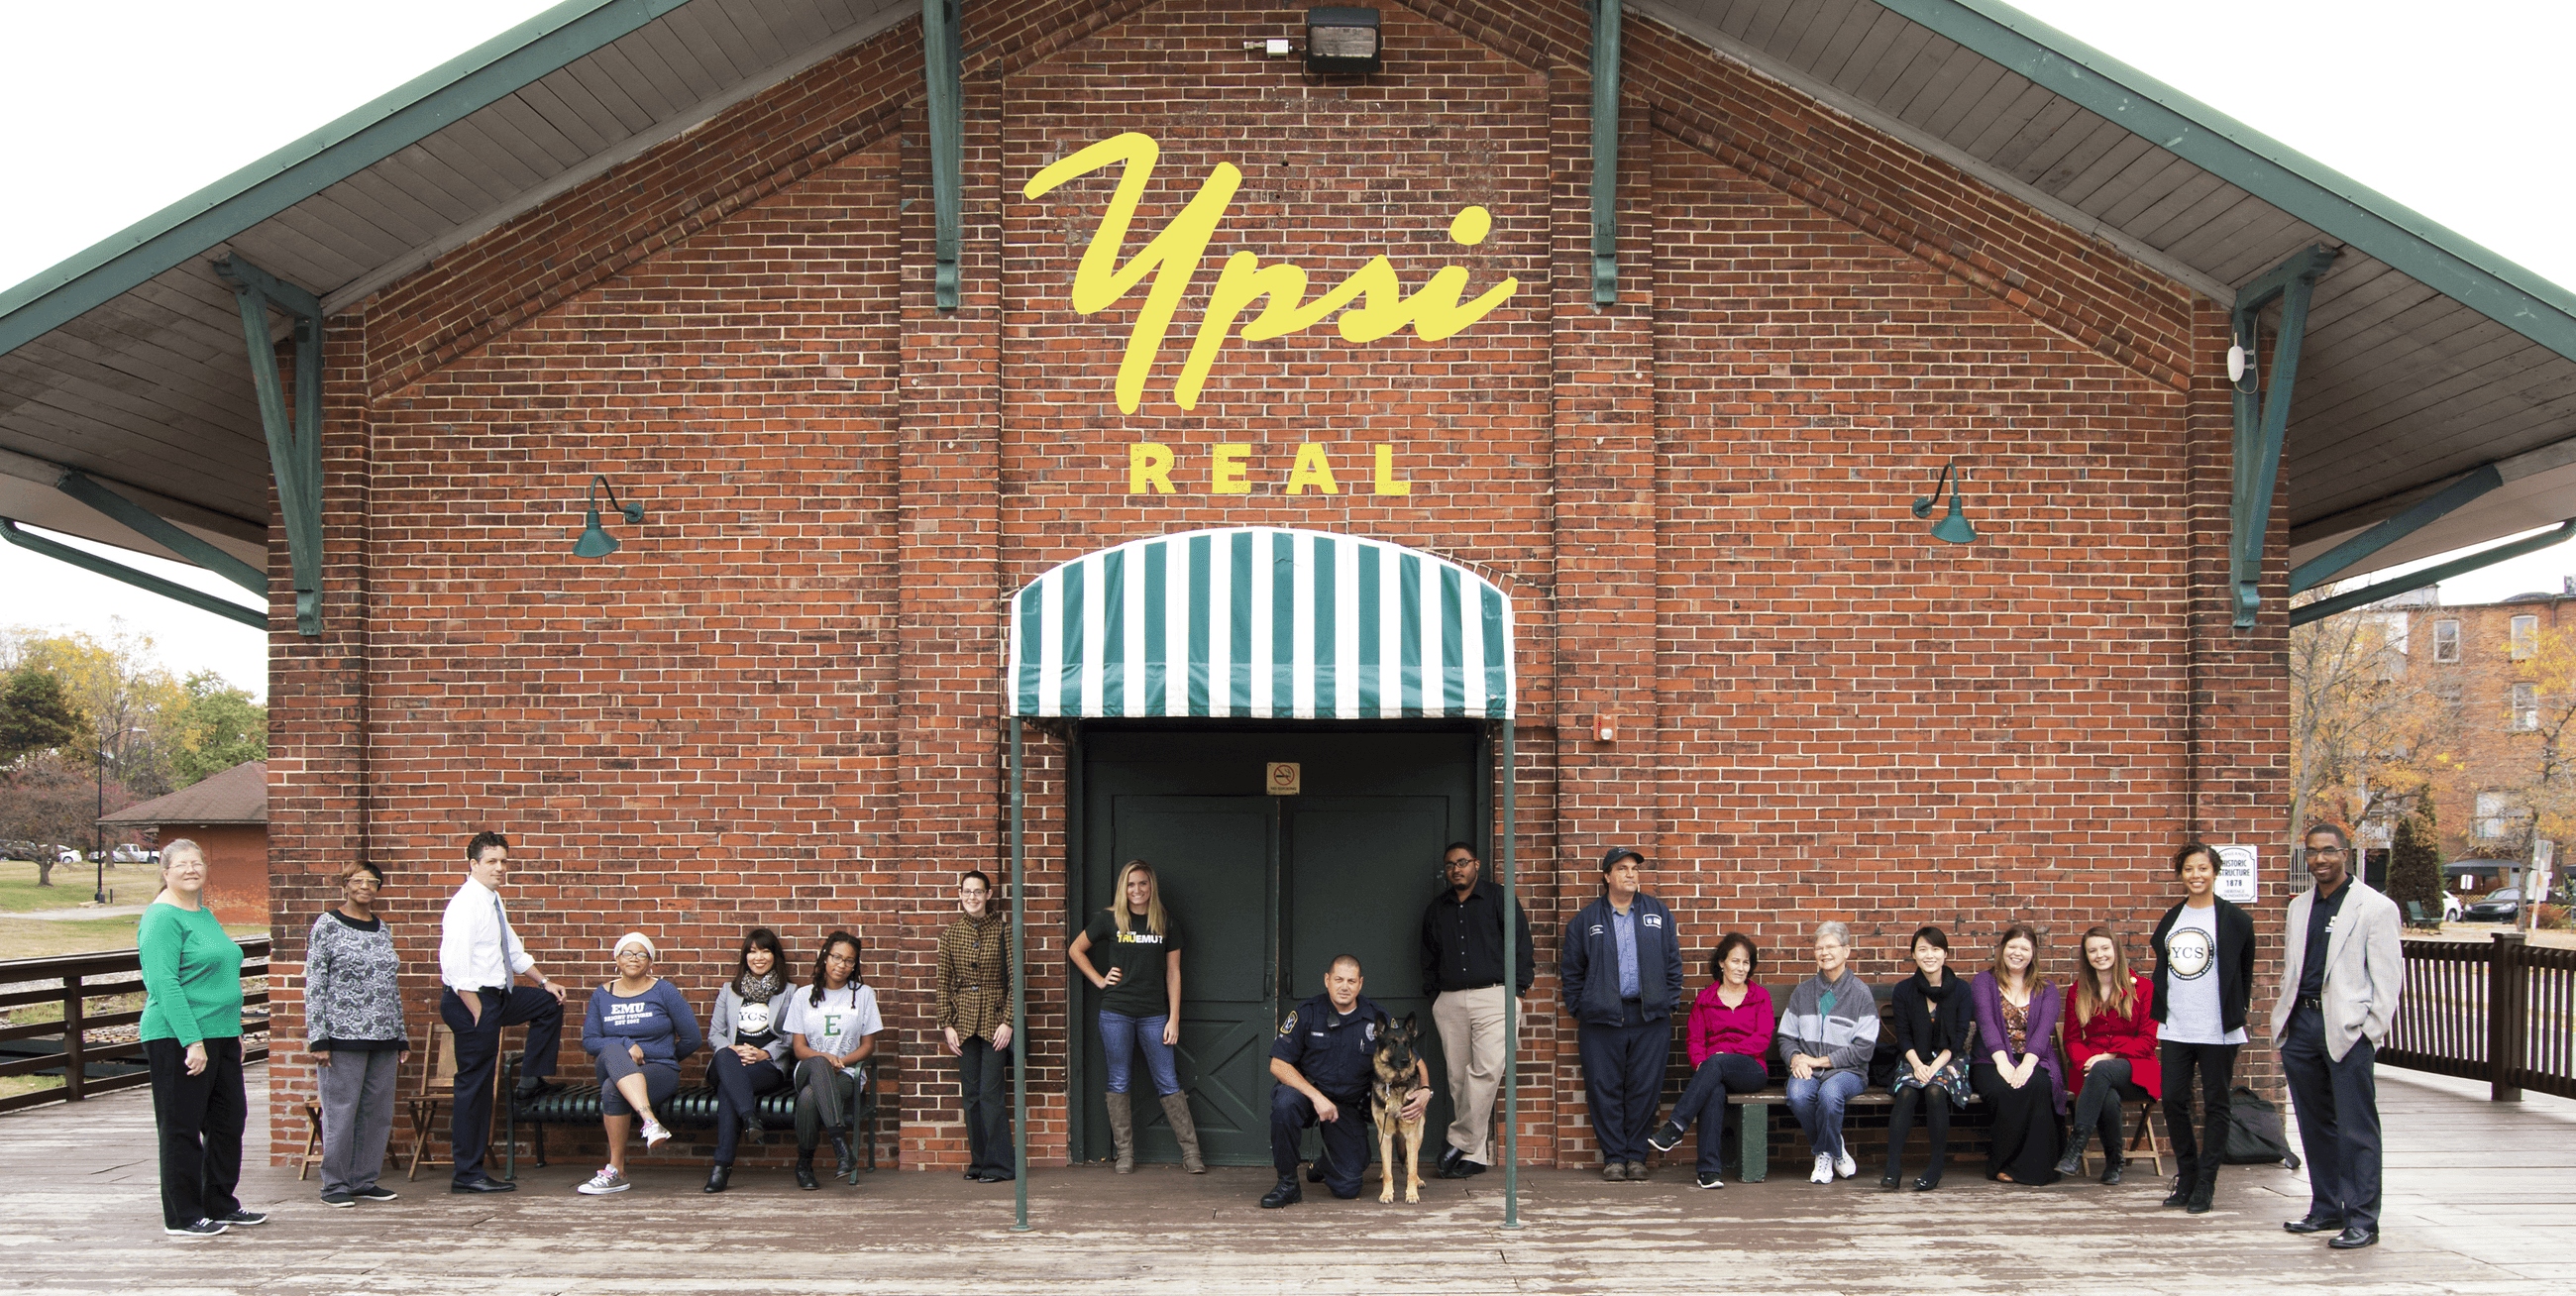 Ypsi Real Cropped